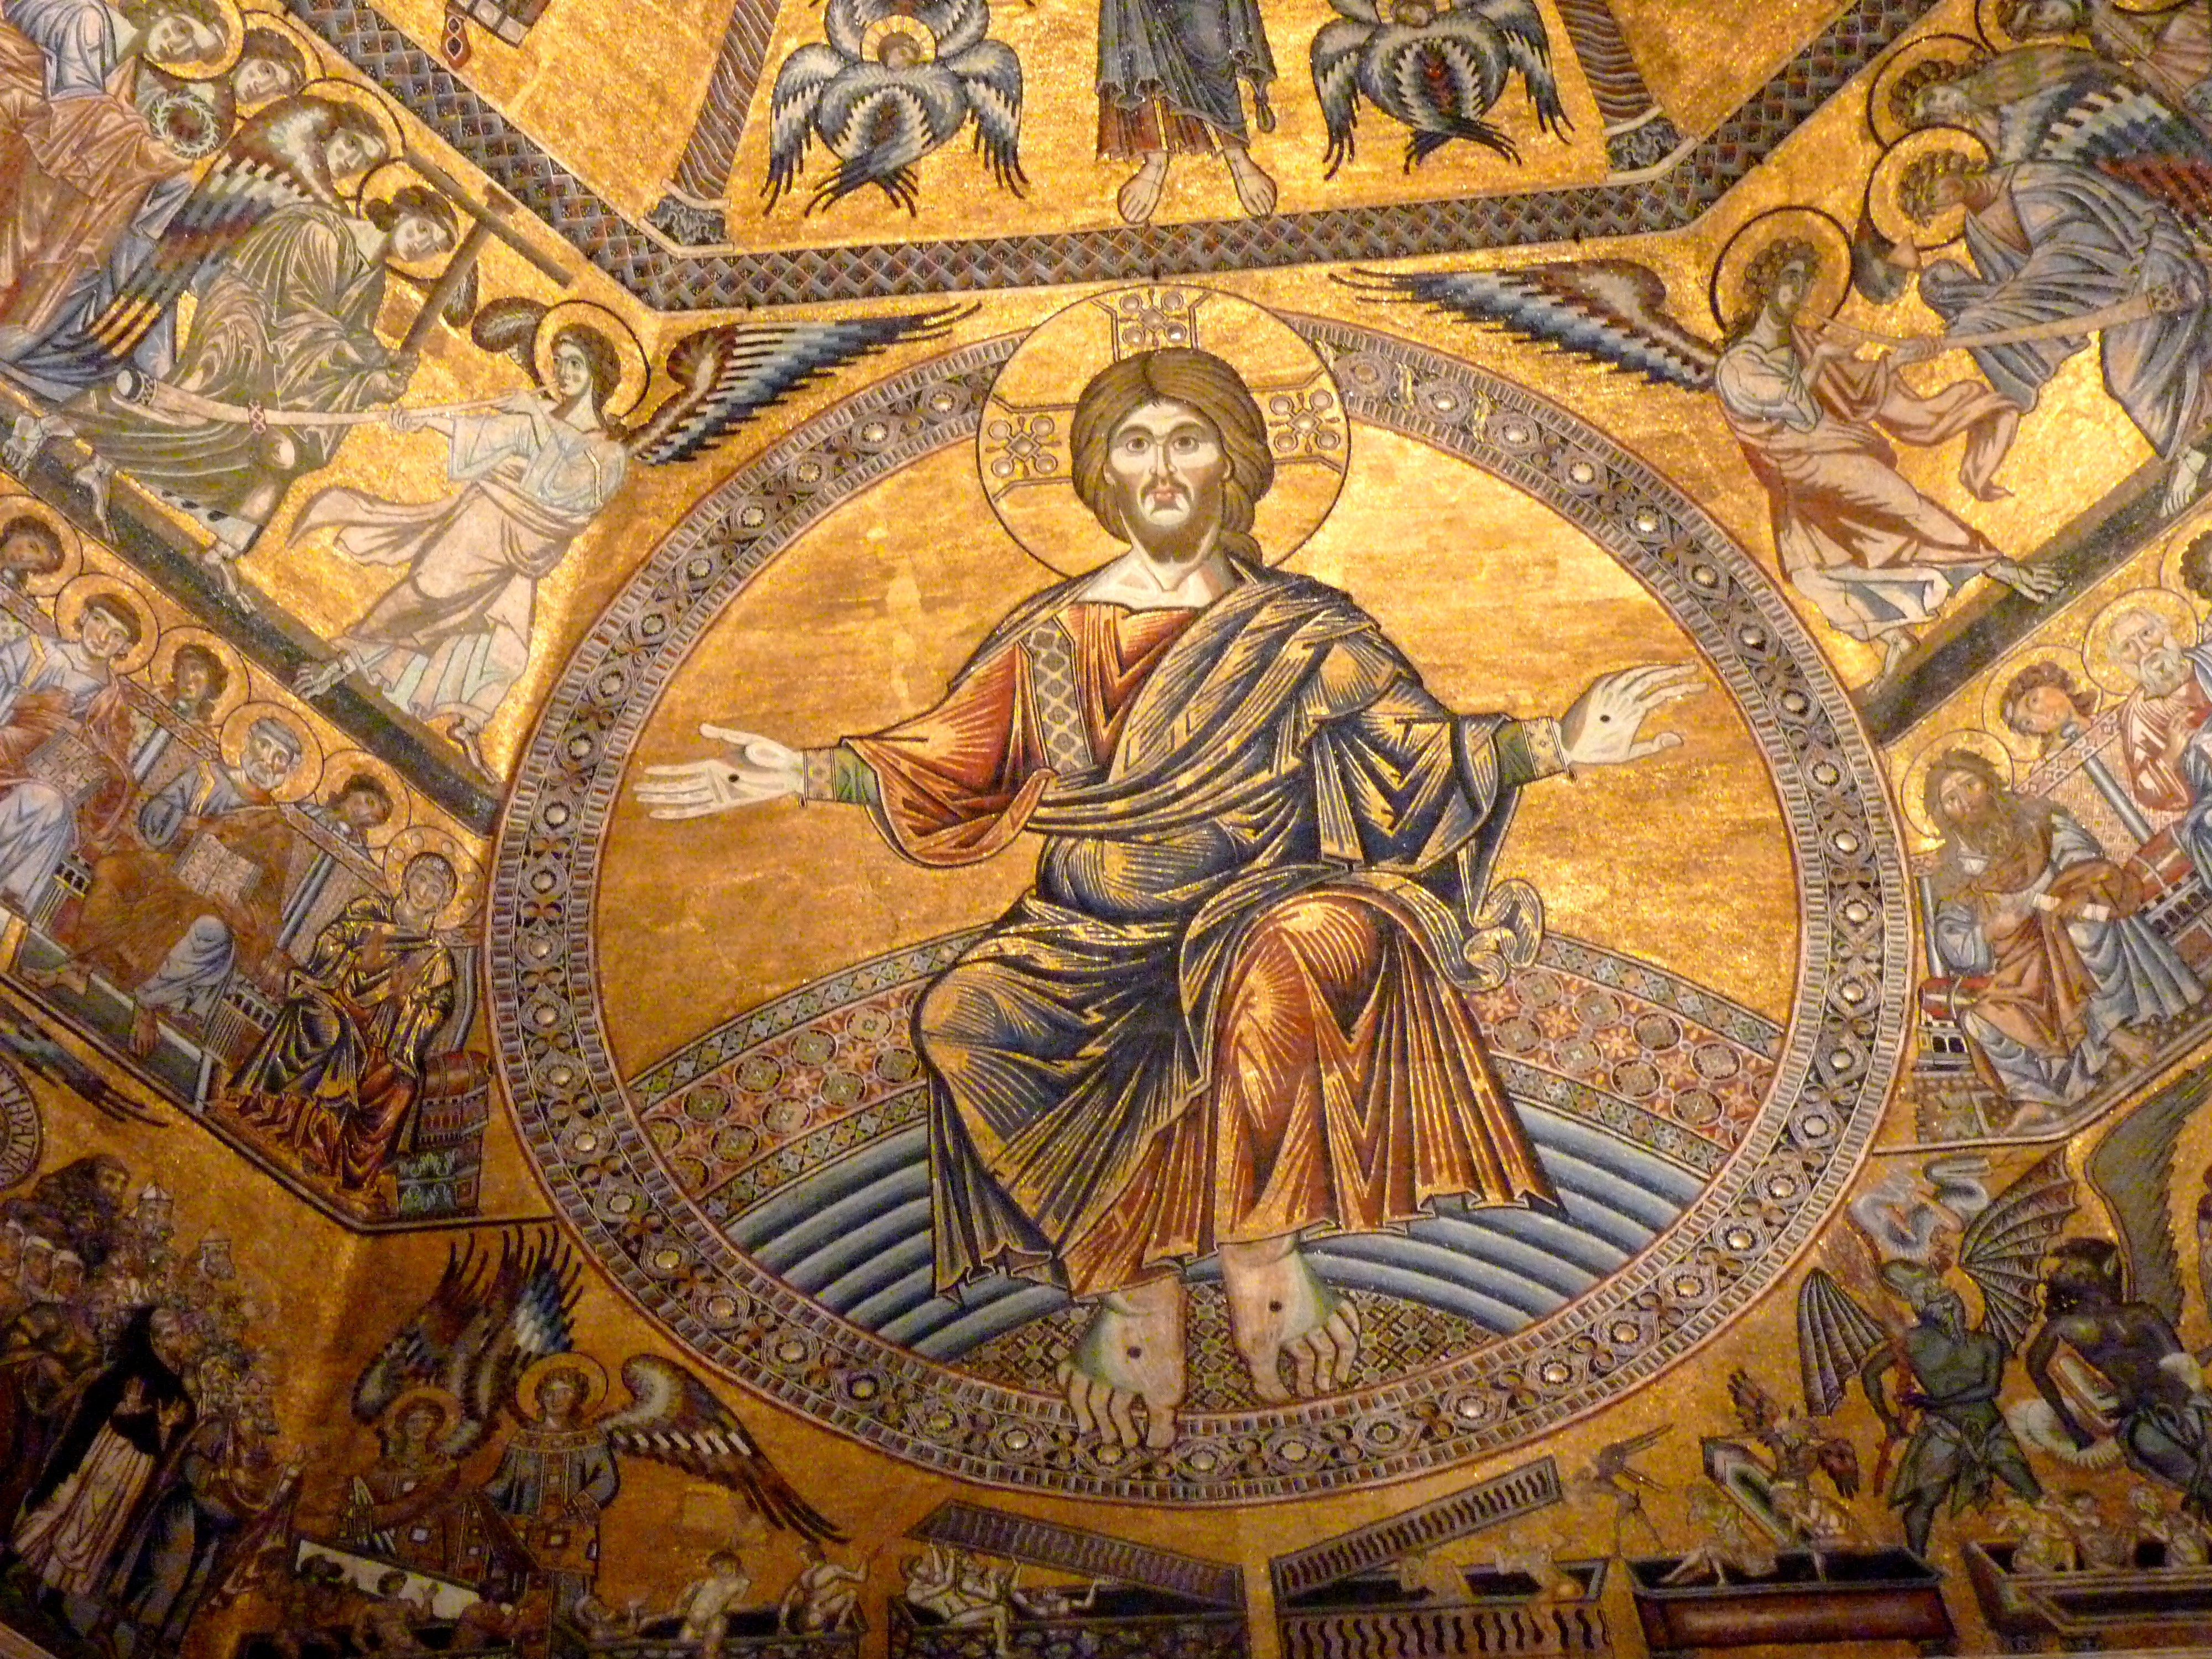 File:The mosaic ceiling of the Baptistery of Florence.jpg